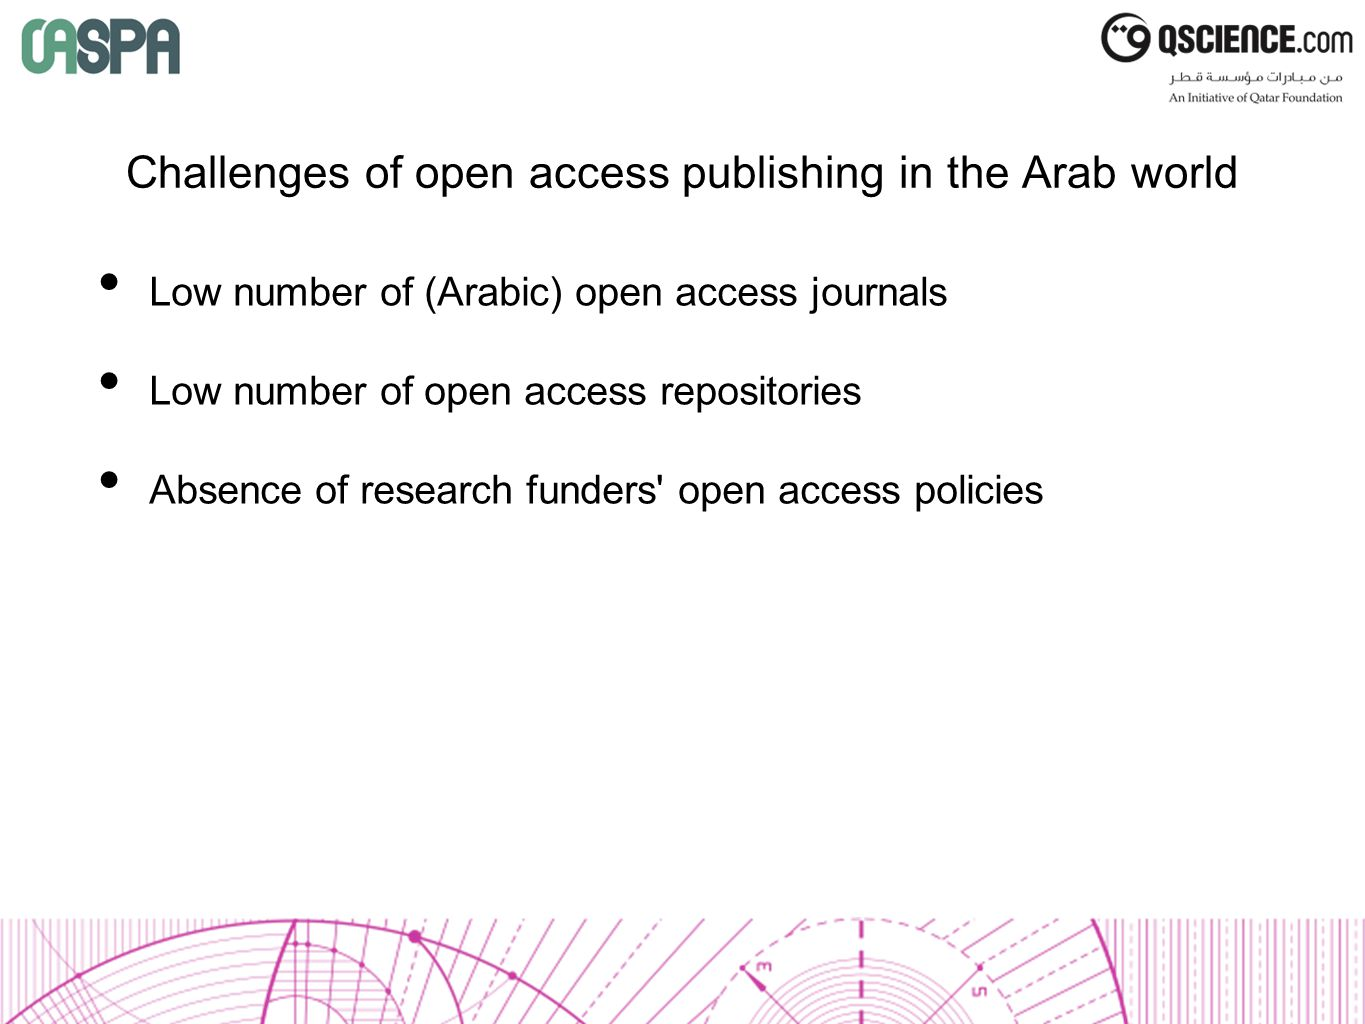 Challenges of open access publishing in the Arab world Low number of (Arabic) open access journals Low number of open access repositories Absence of research funders open access policies